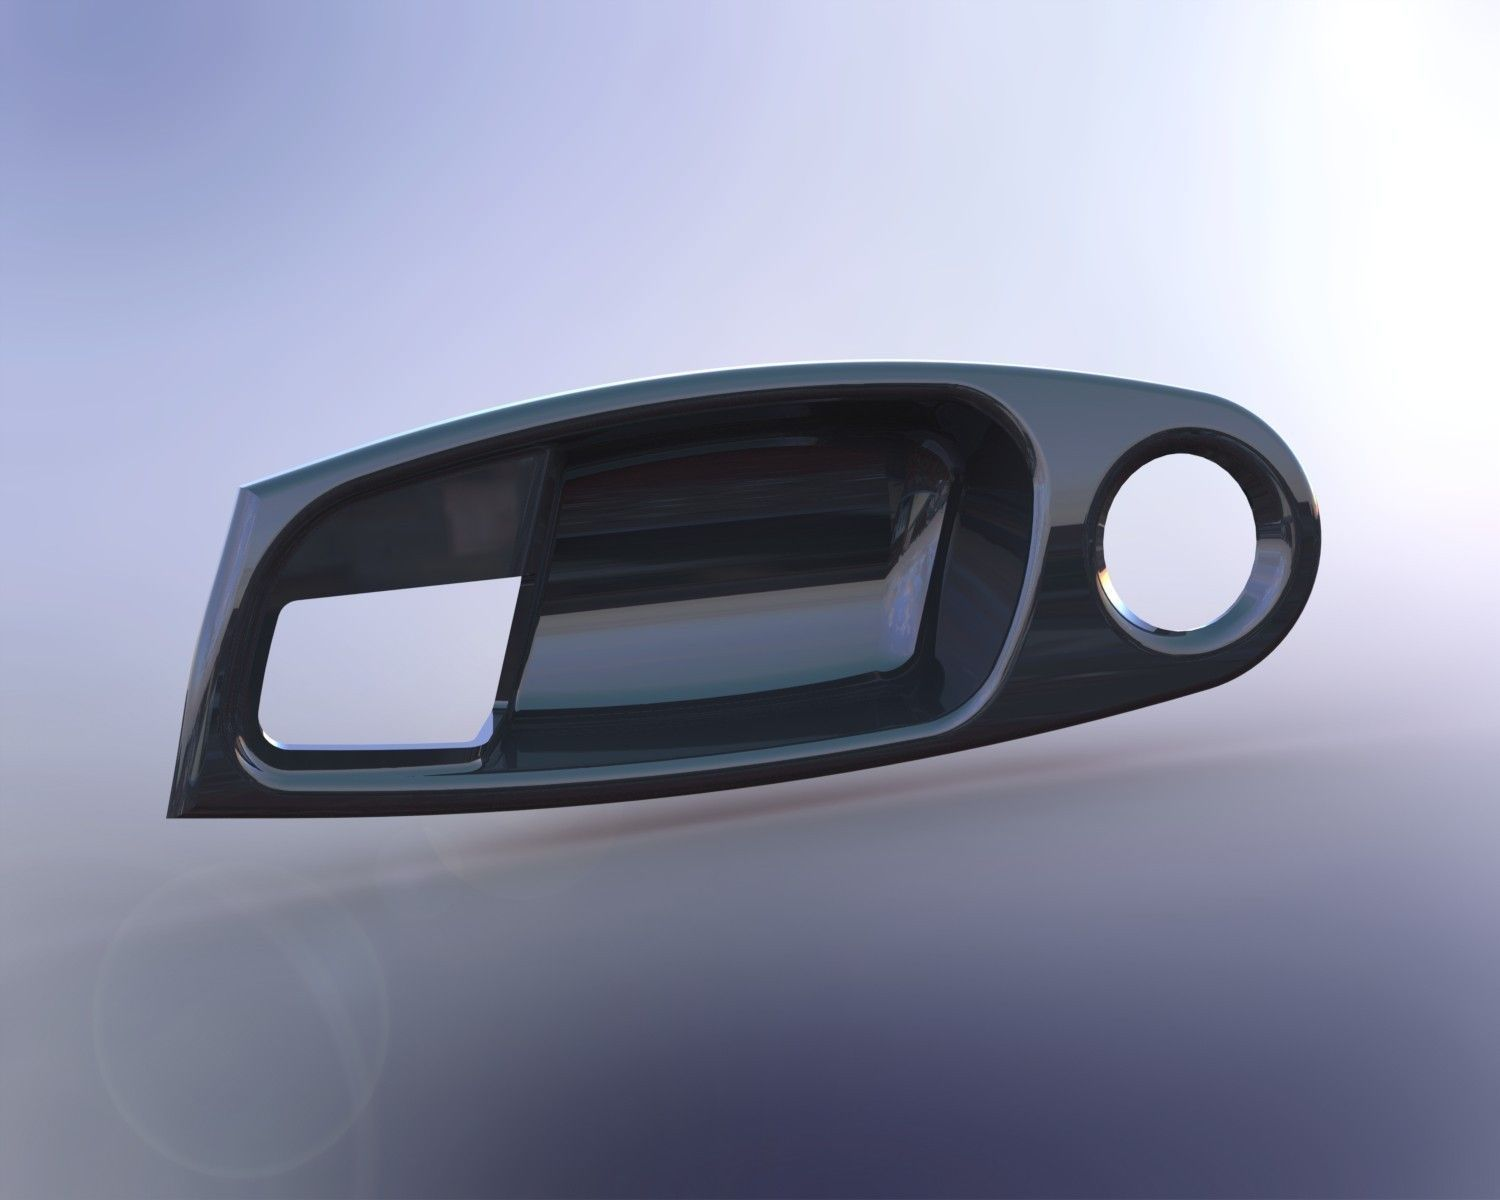 ... door handle bezel 3d model stl dwg sldprt sldasm slddrw 4 & Door Handle Bezel 3D | CGTrader